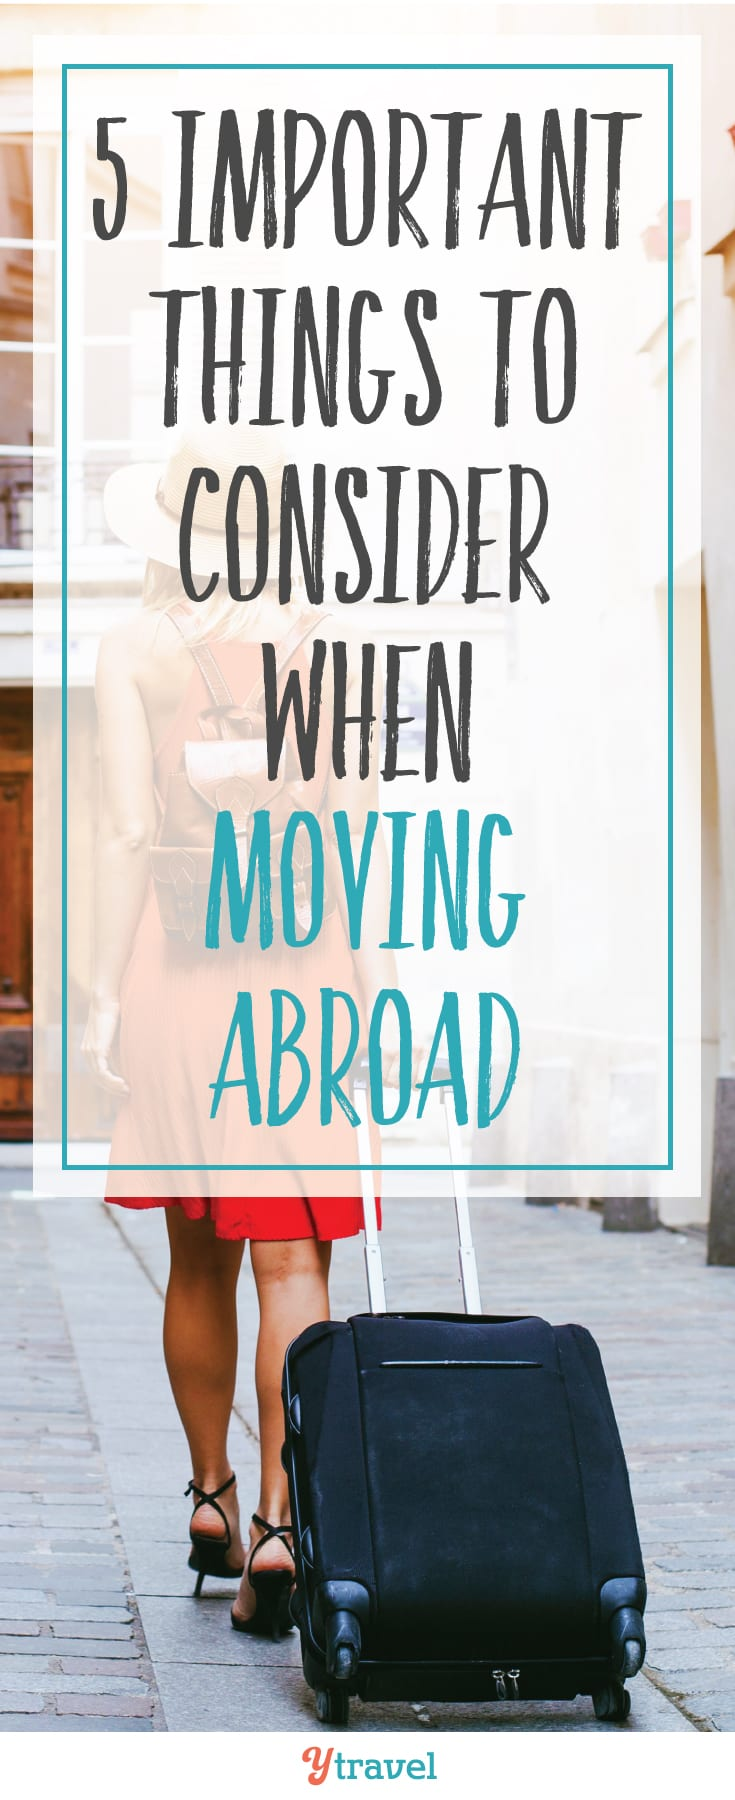 5 important things to consider when moving abroad.